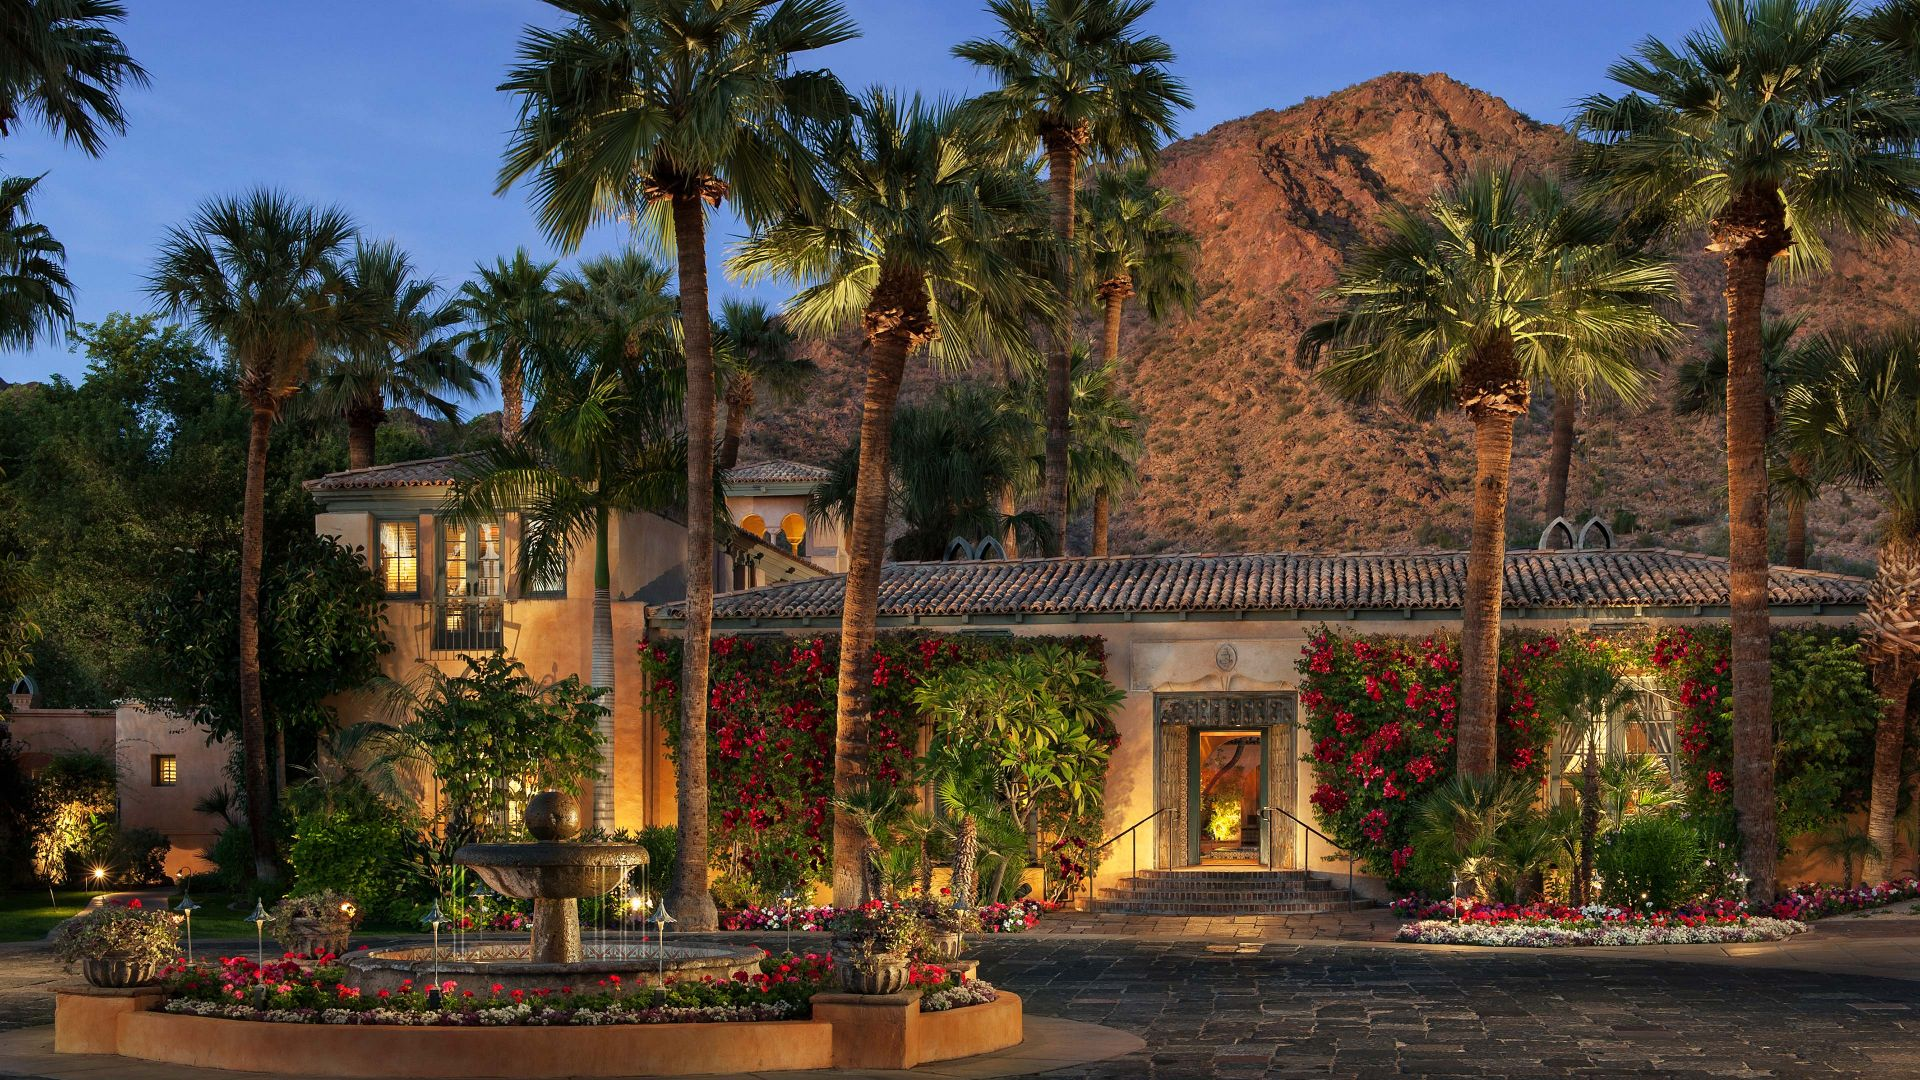 Luxury Phoenix Resort Near Camelback Mountain Royal Palms Resort